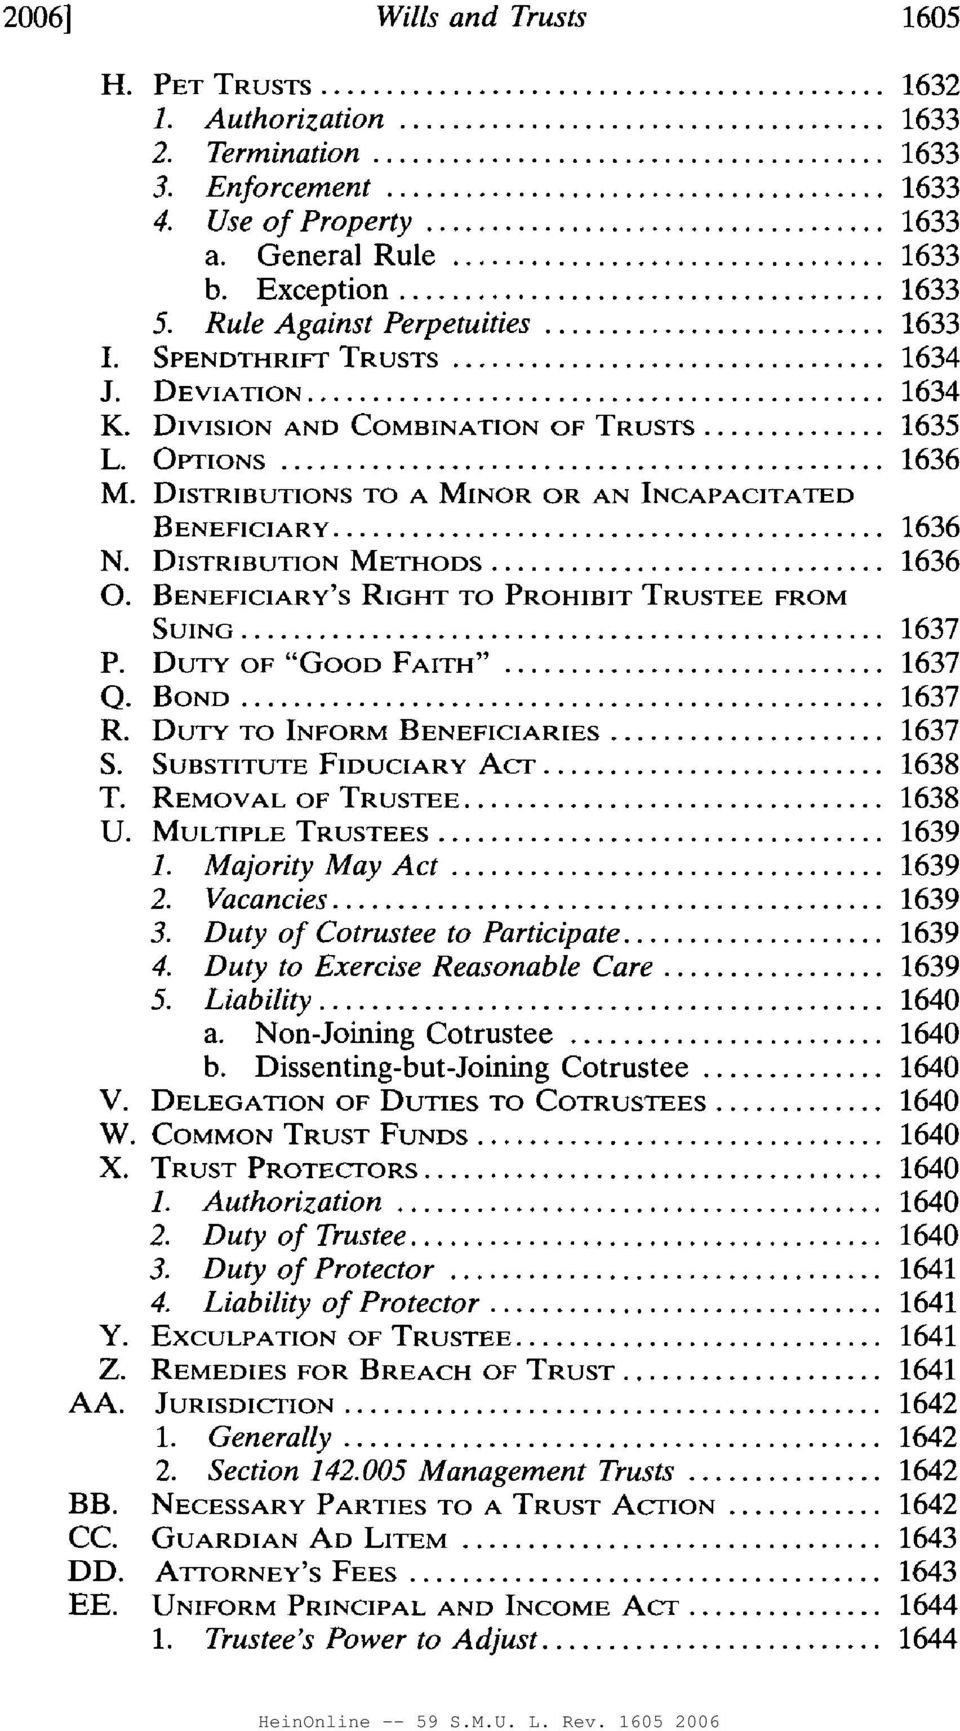 WILLS AND TRUSTS  Gerry W  Beyer* TABLE OF CONTENTS - PDF